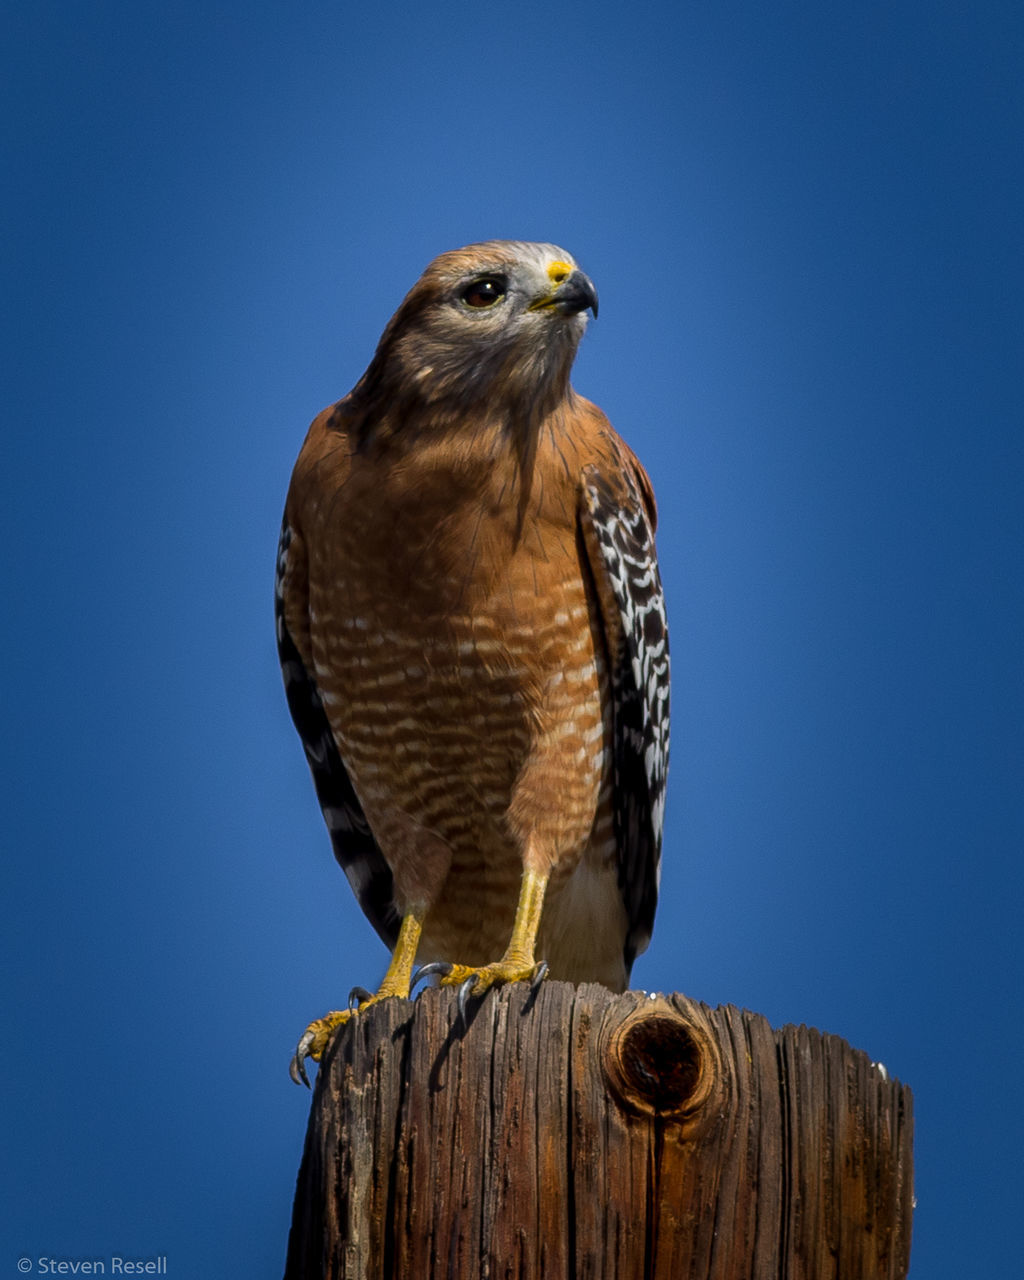 bird, one animal, animal themes, bird of prey, animals in the wild, blue, animal wildlife, clear sky, perching, day, wood - material, low angle view, outdoors, no people, nature, close-up